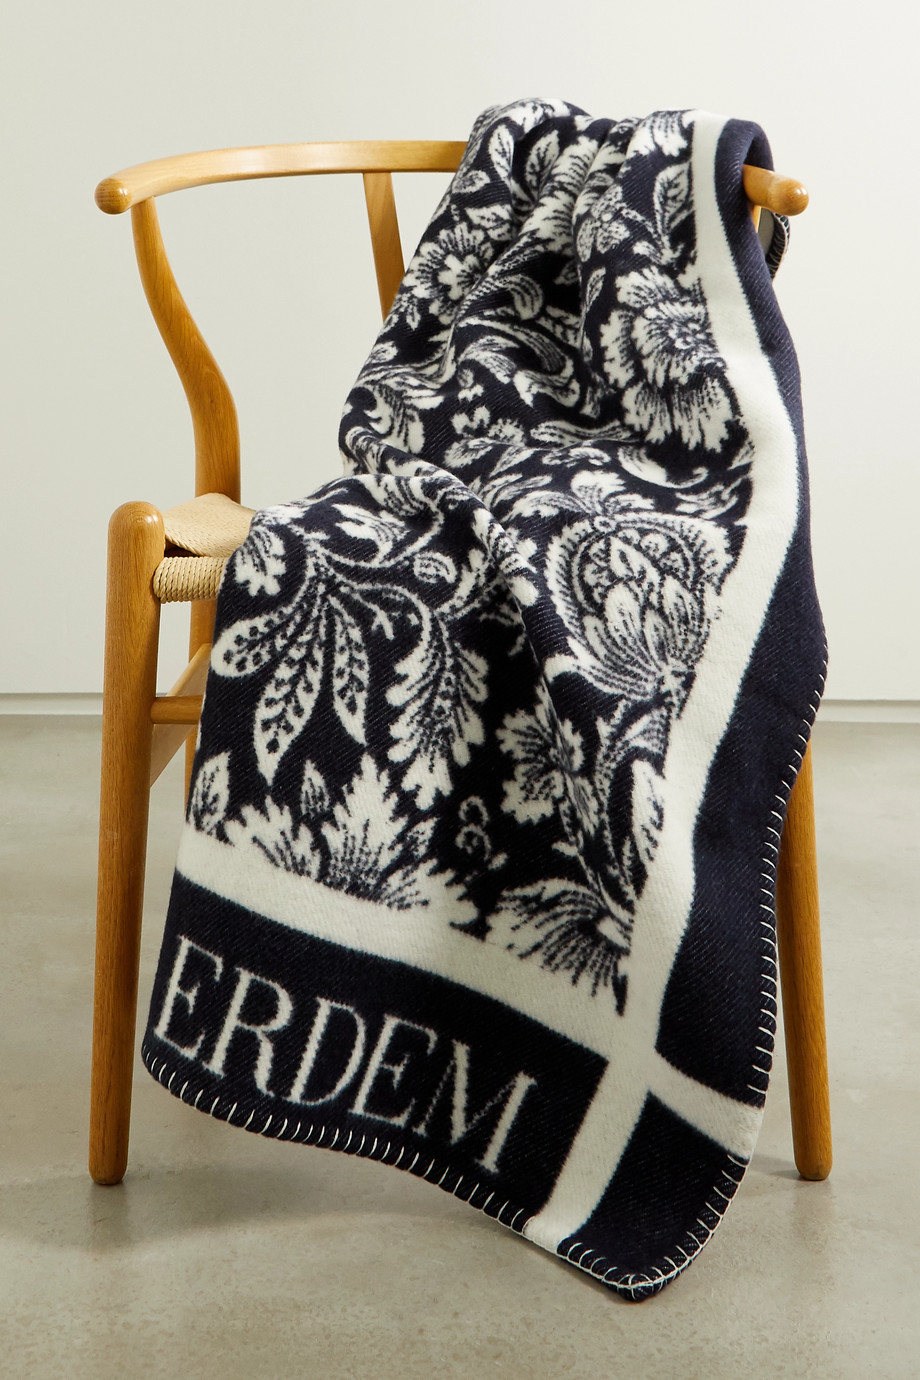 Erdem Intarsia merino wool and cashmere-blend blanket